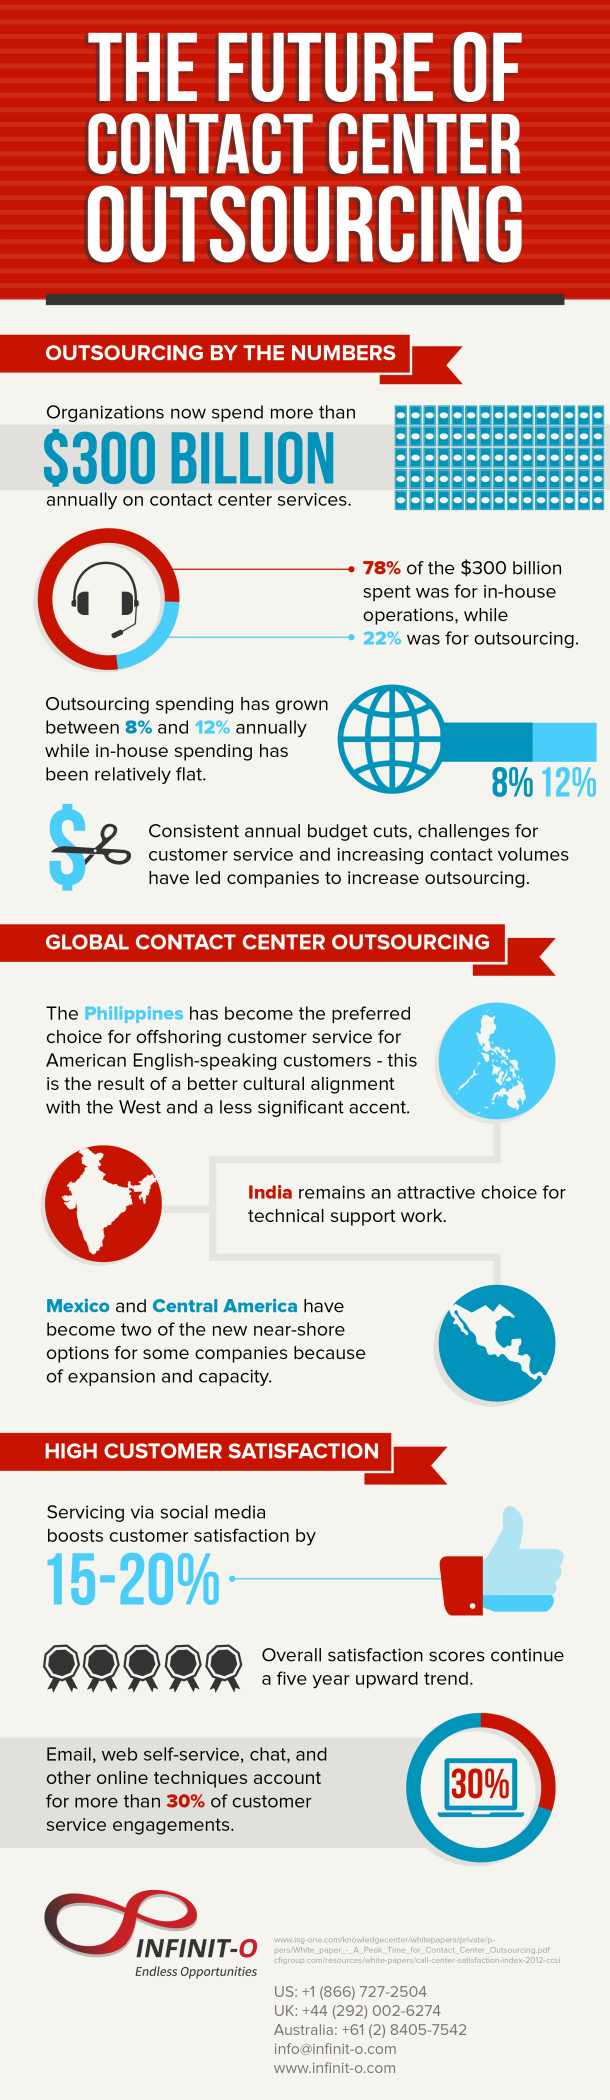 the-future-of-the-call-center-outsourcing-industry_525f4c69b1d2b